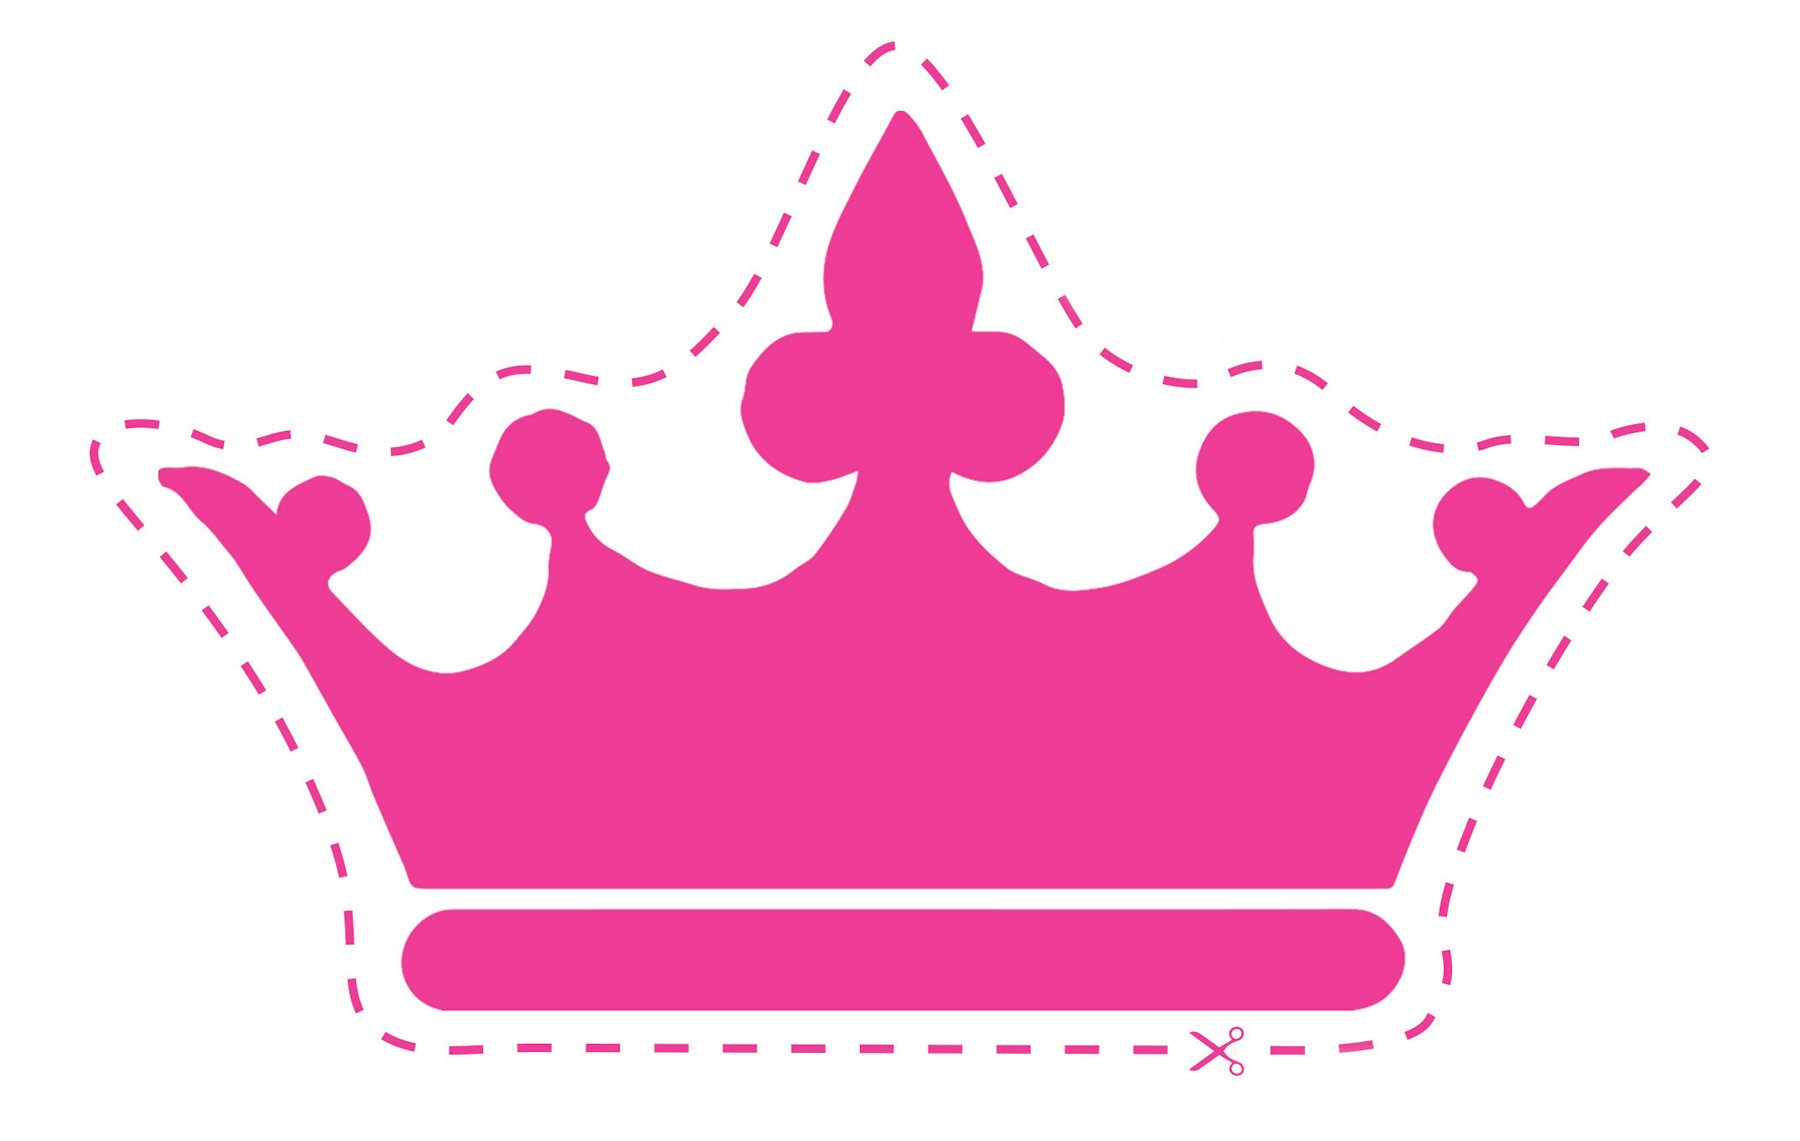 best images of. Crowns clipart queencrown